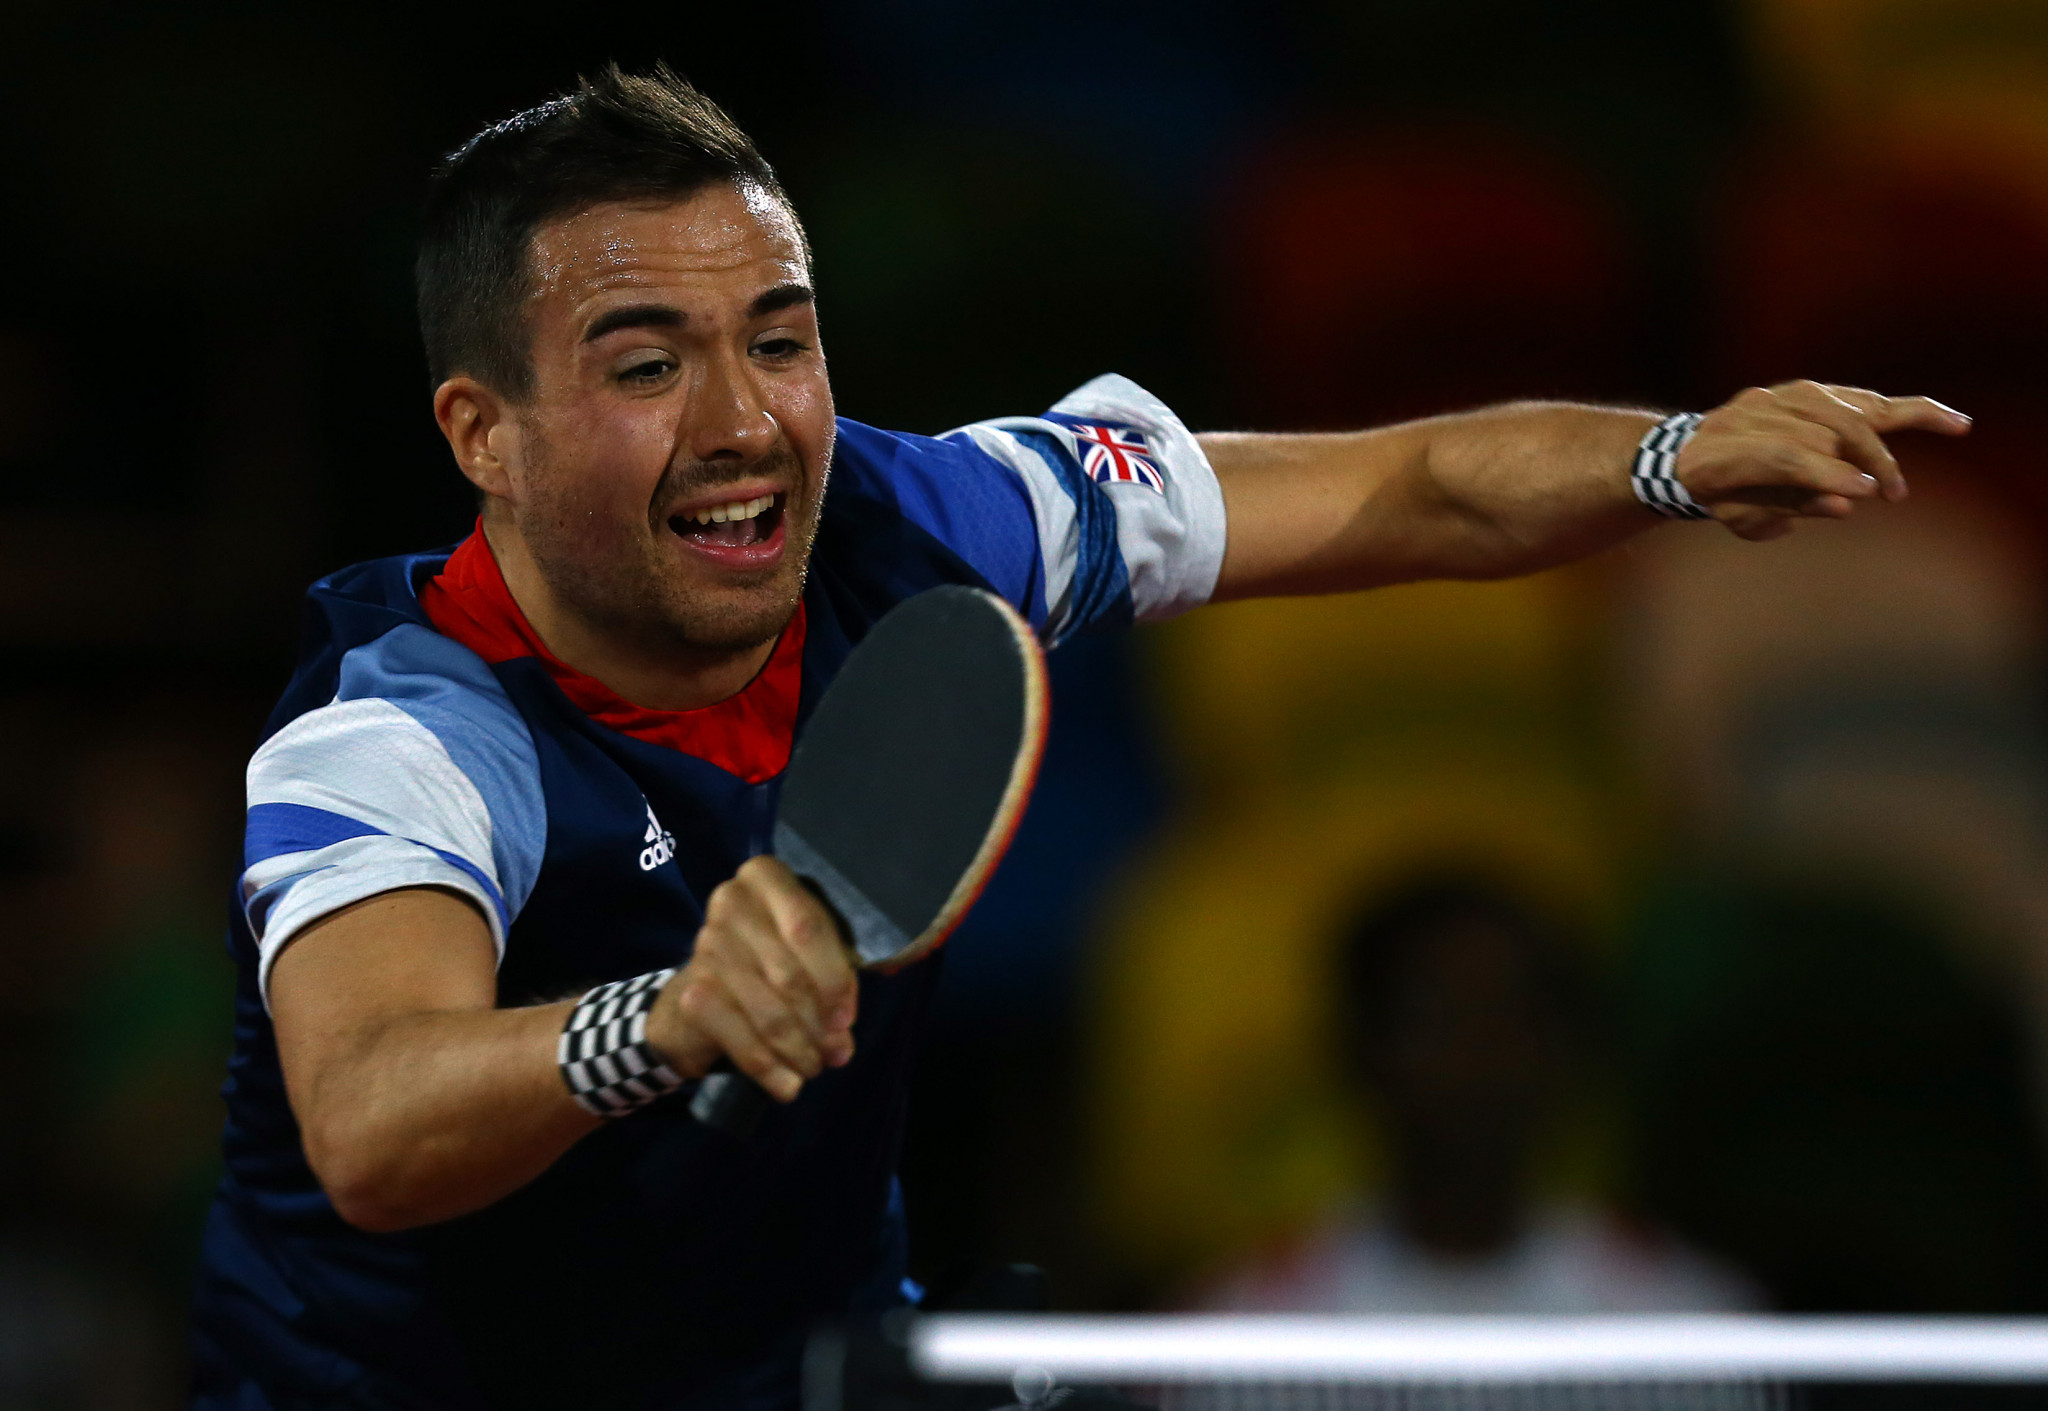 Bayley has his dancing feet on for European Para Table Tennis Championships